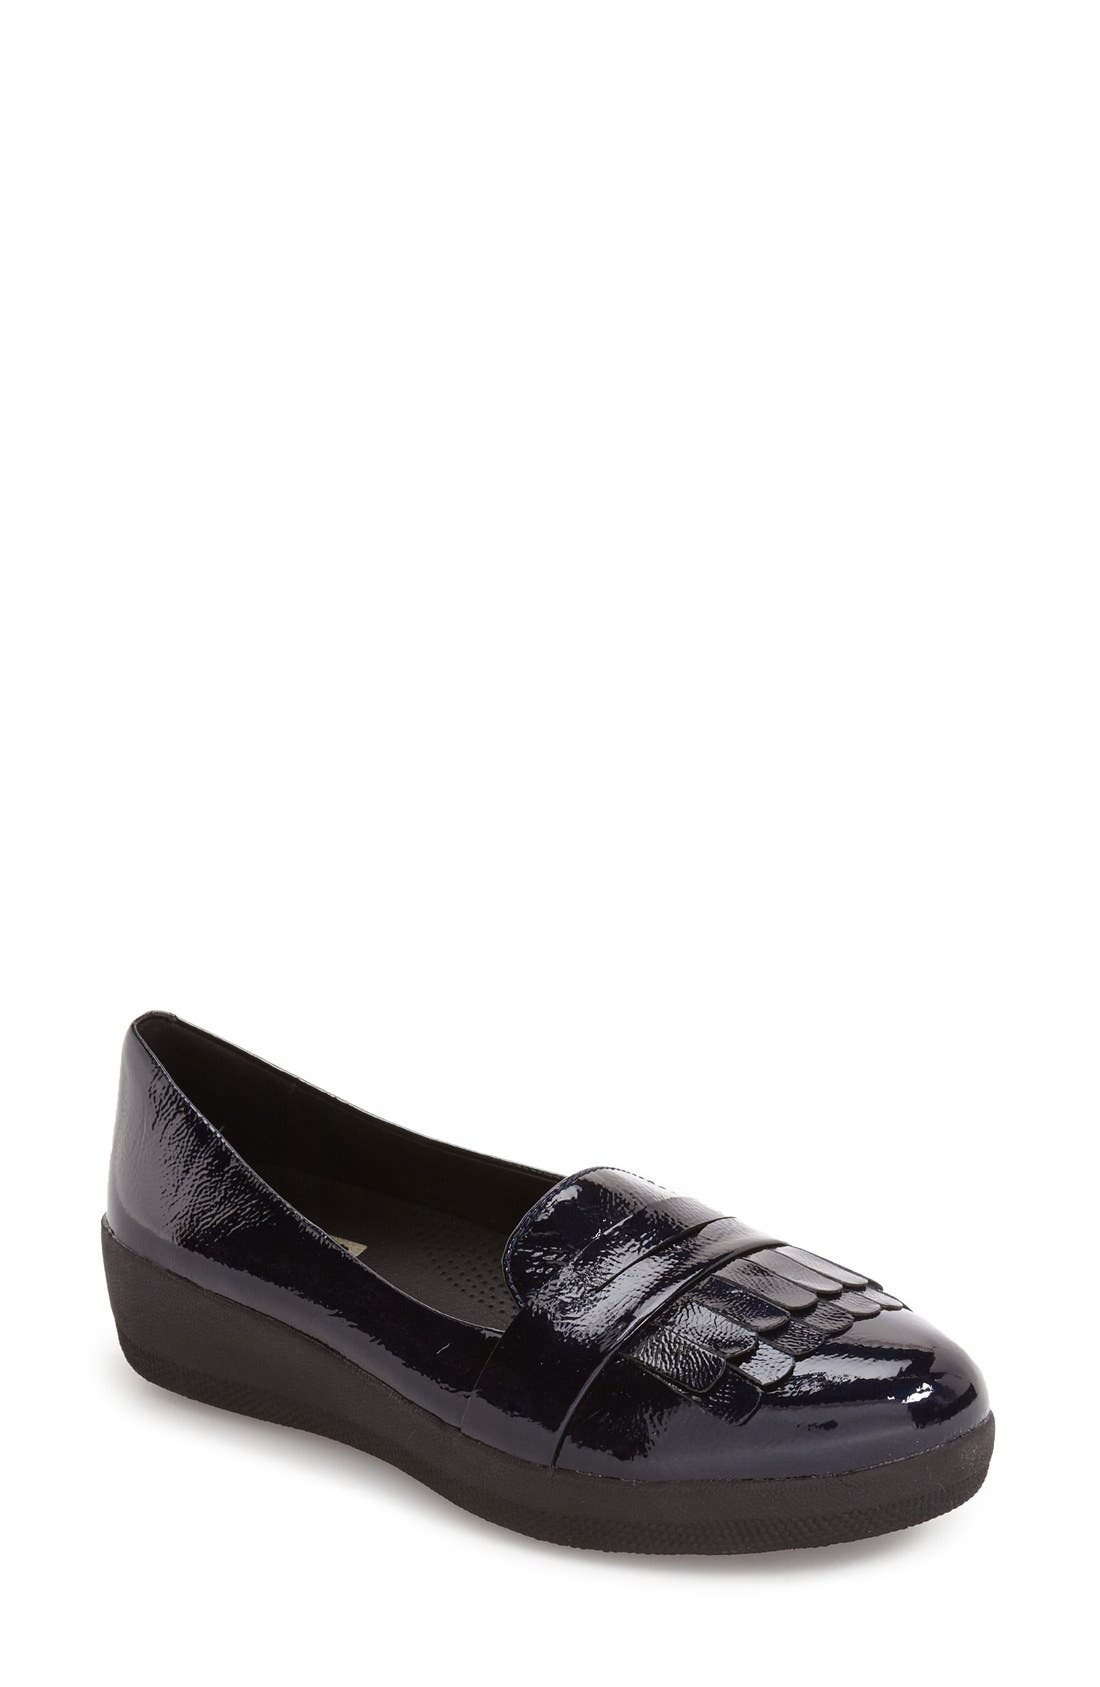 Fringey Loafer,                         Main,                         color, Inky Blue Leather